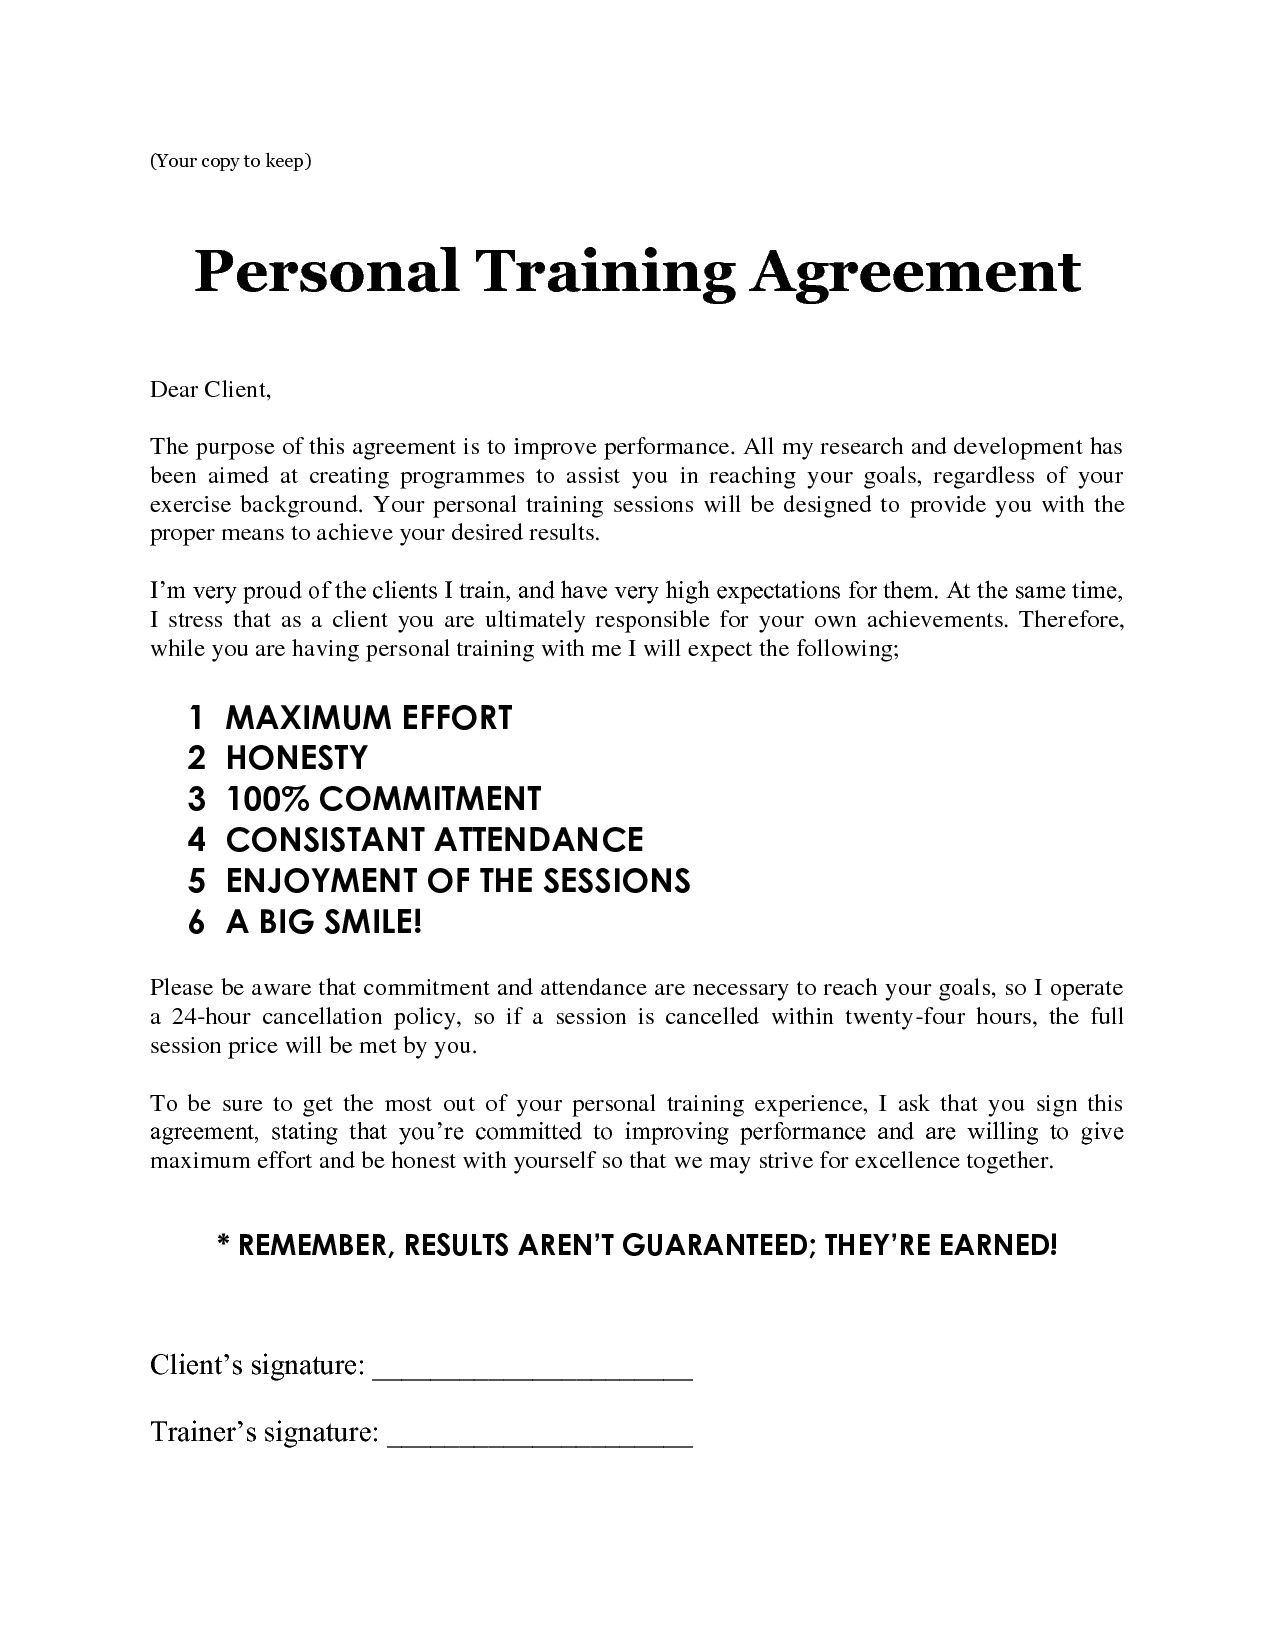 Personal Trainer Contract with Gym Template Personal Training Sheets Images Personal Training